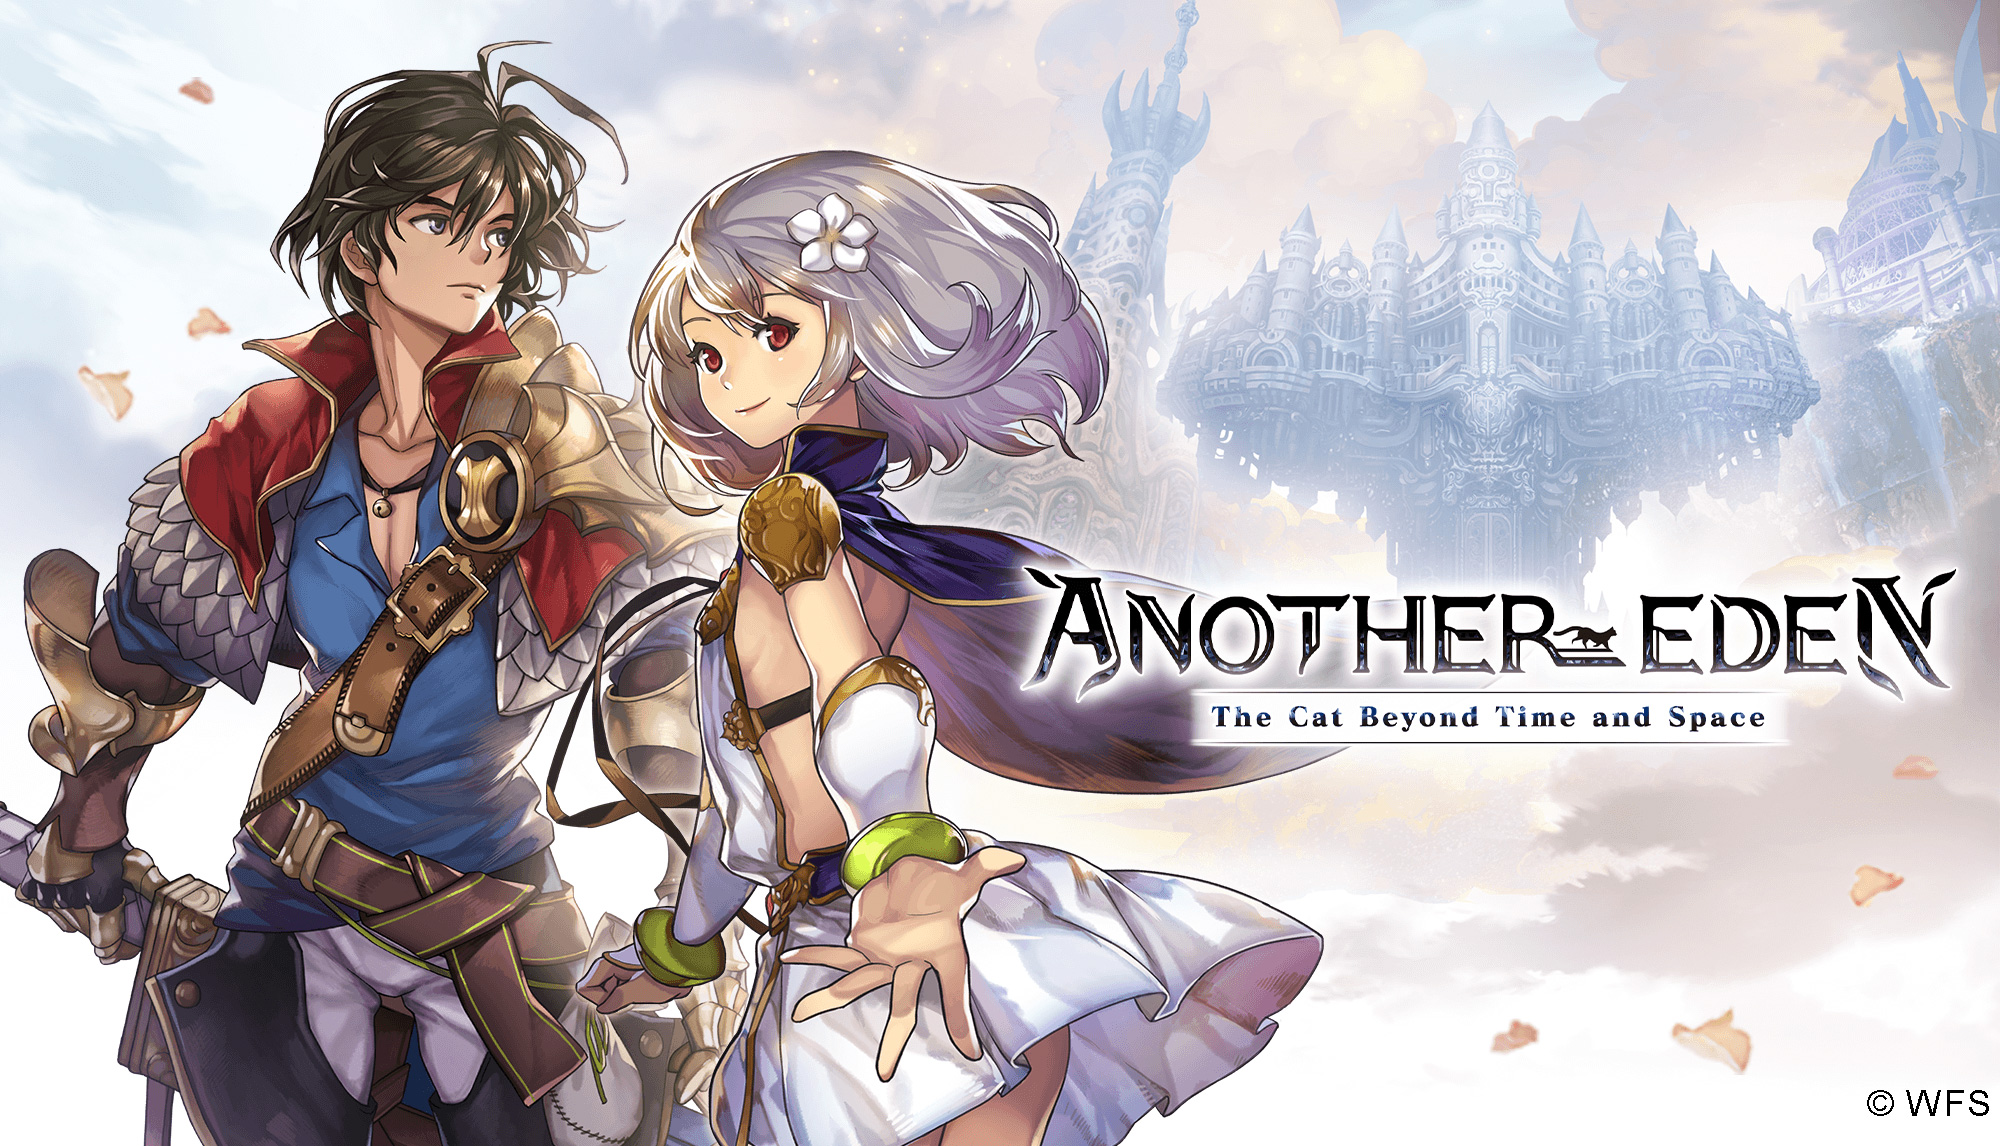 Step back in time with Another Eden: The Cat Beyond Time and Space